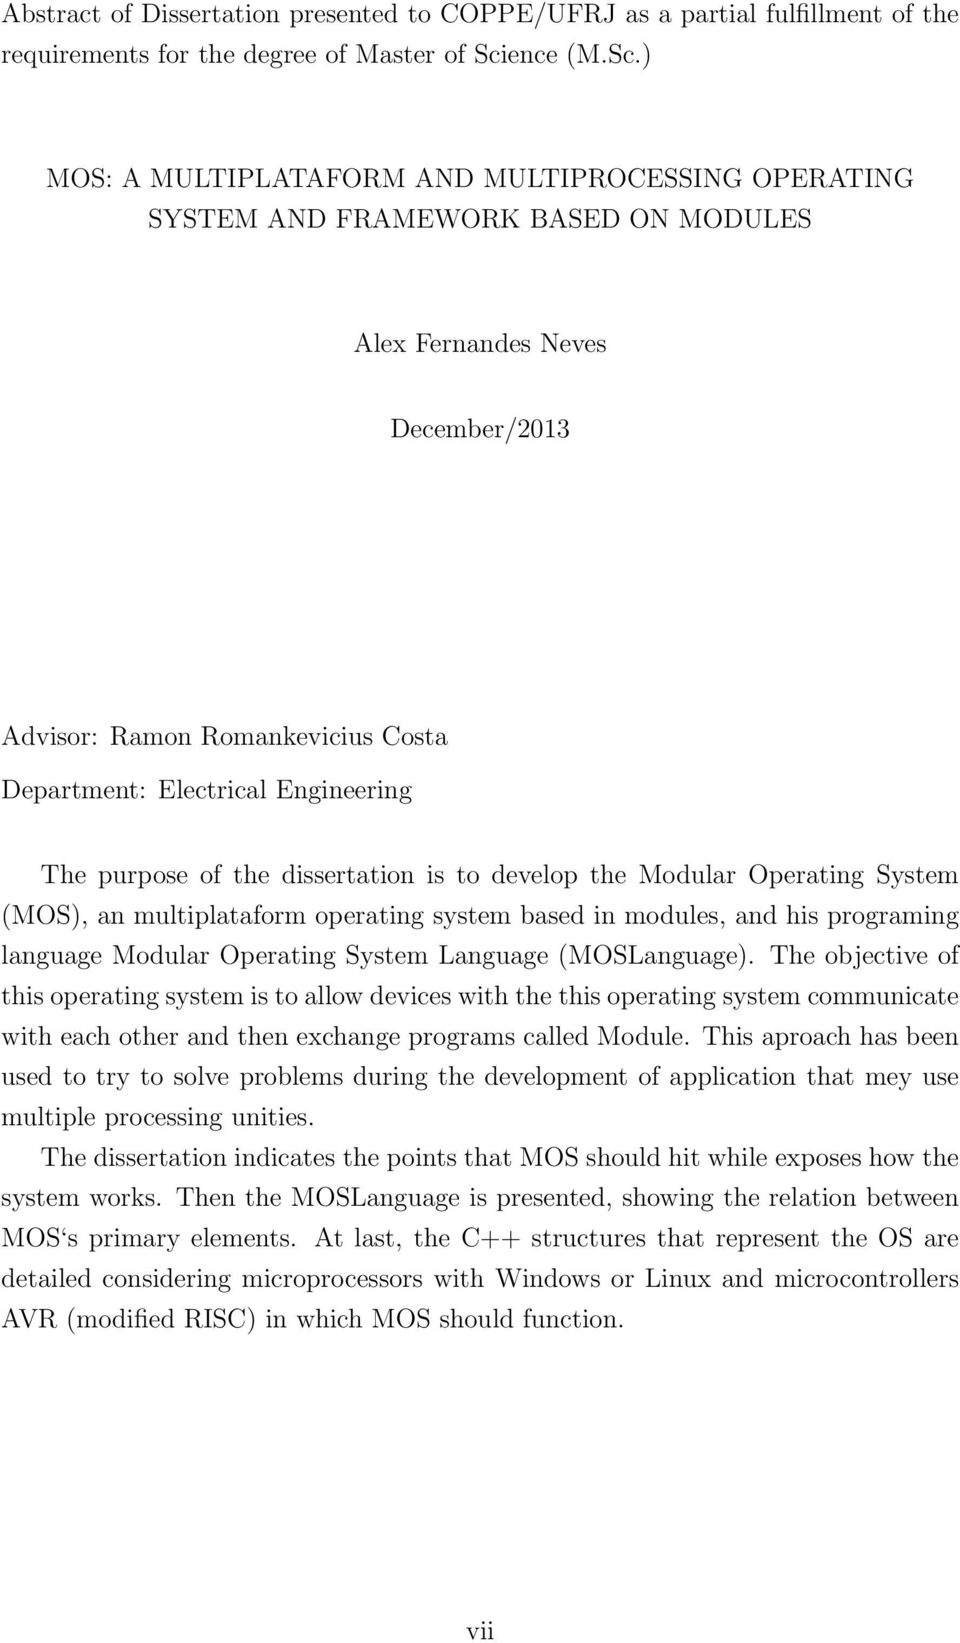 ) MOS: A MULTIPLATAFORM AND MULTIPROCESSING OPERATING SYSTEM AND FRAMEWORK BASED ON MODULES Alex Fernandes Neves December/2013 Advisor: Ramon Romankevicius Costa Department: Electrical Engineering